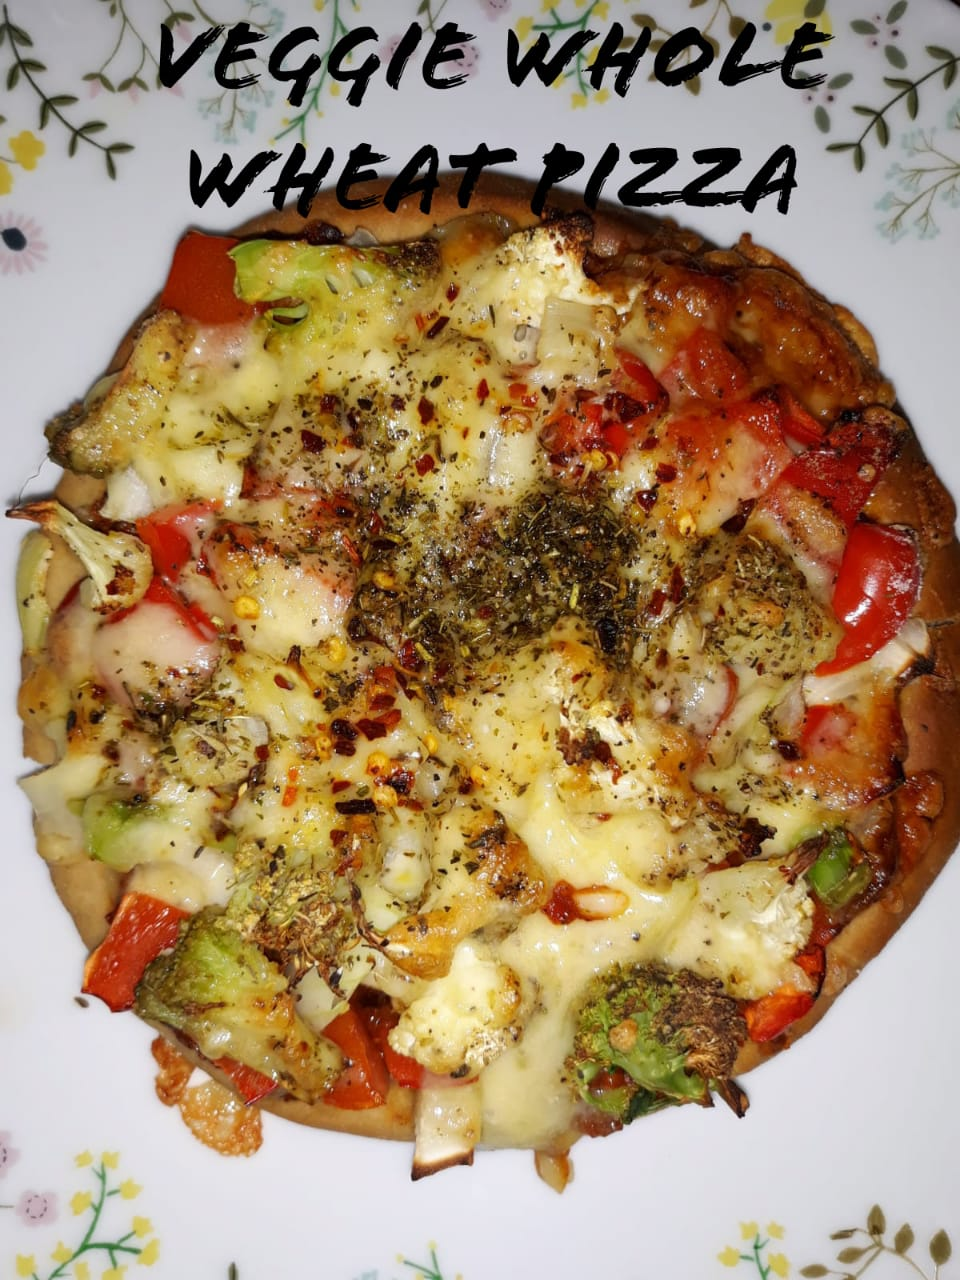 Veggie Whole Wheat Pizza | Healthy Veg Wheat Pizza